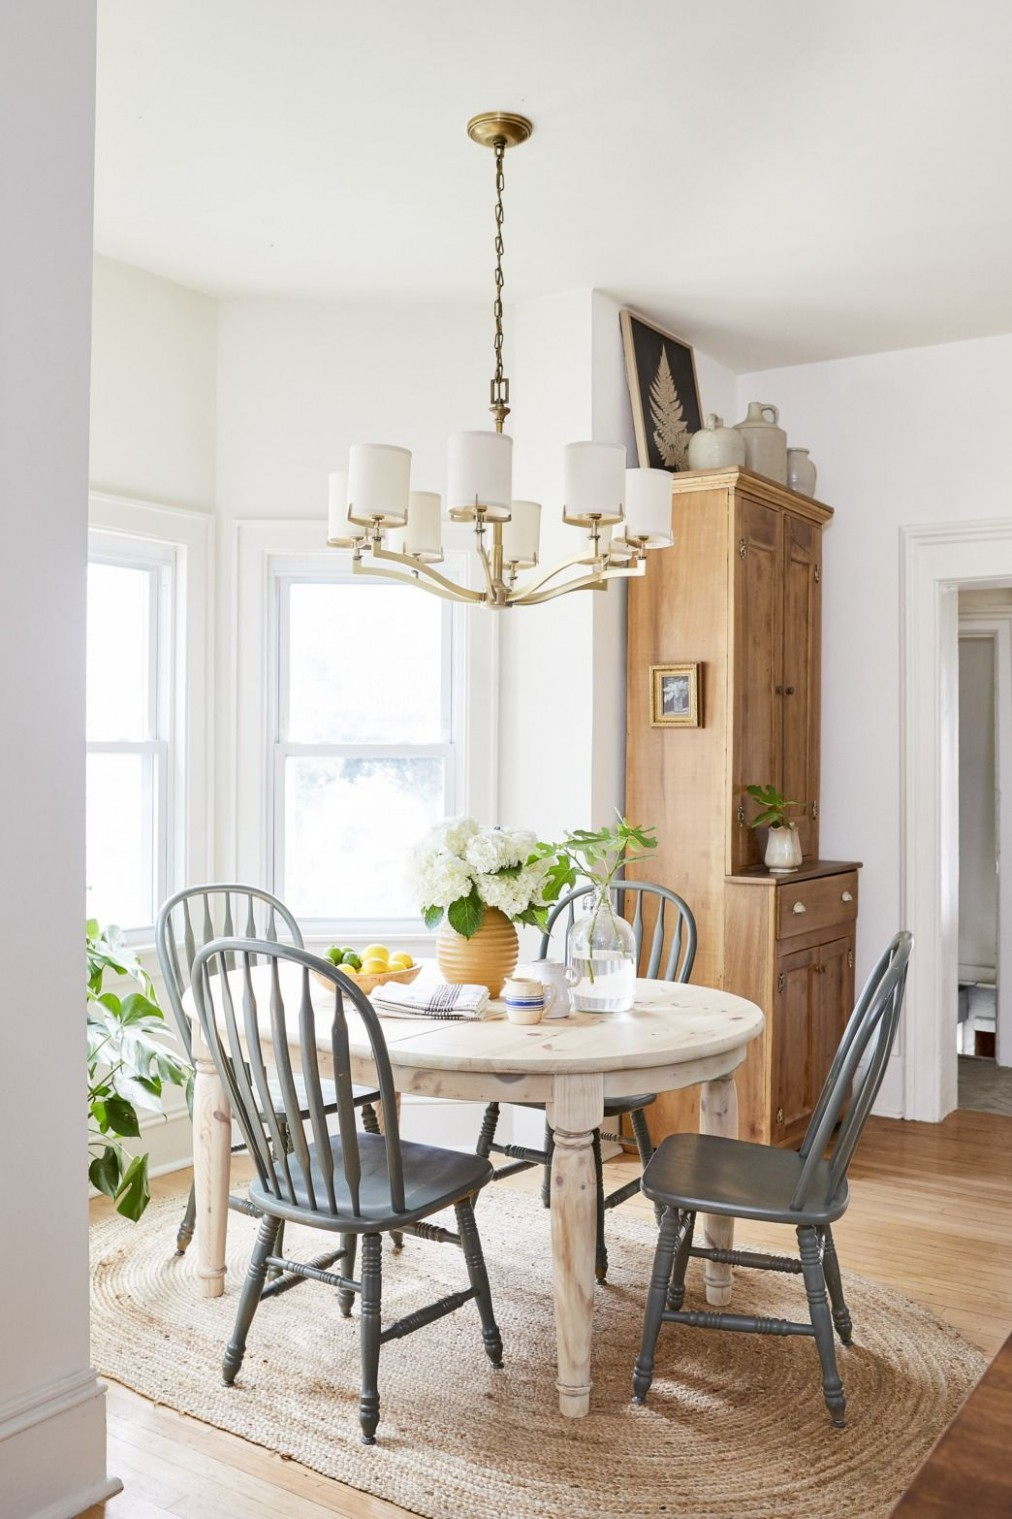 9 Best Dining Room Decorating Ideas - Country Dining Room Decor - Dining Room Ideas With Oak Furniture